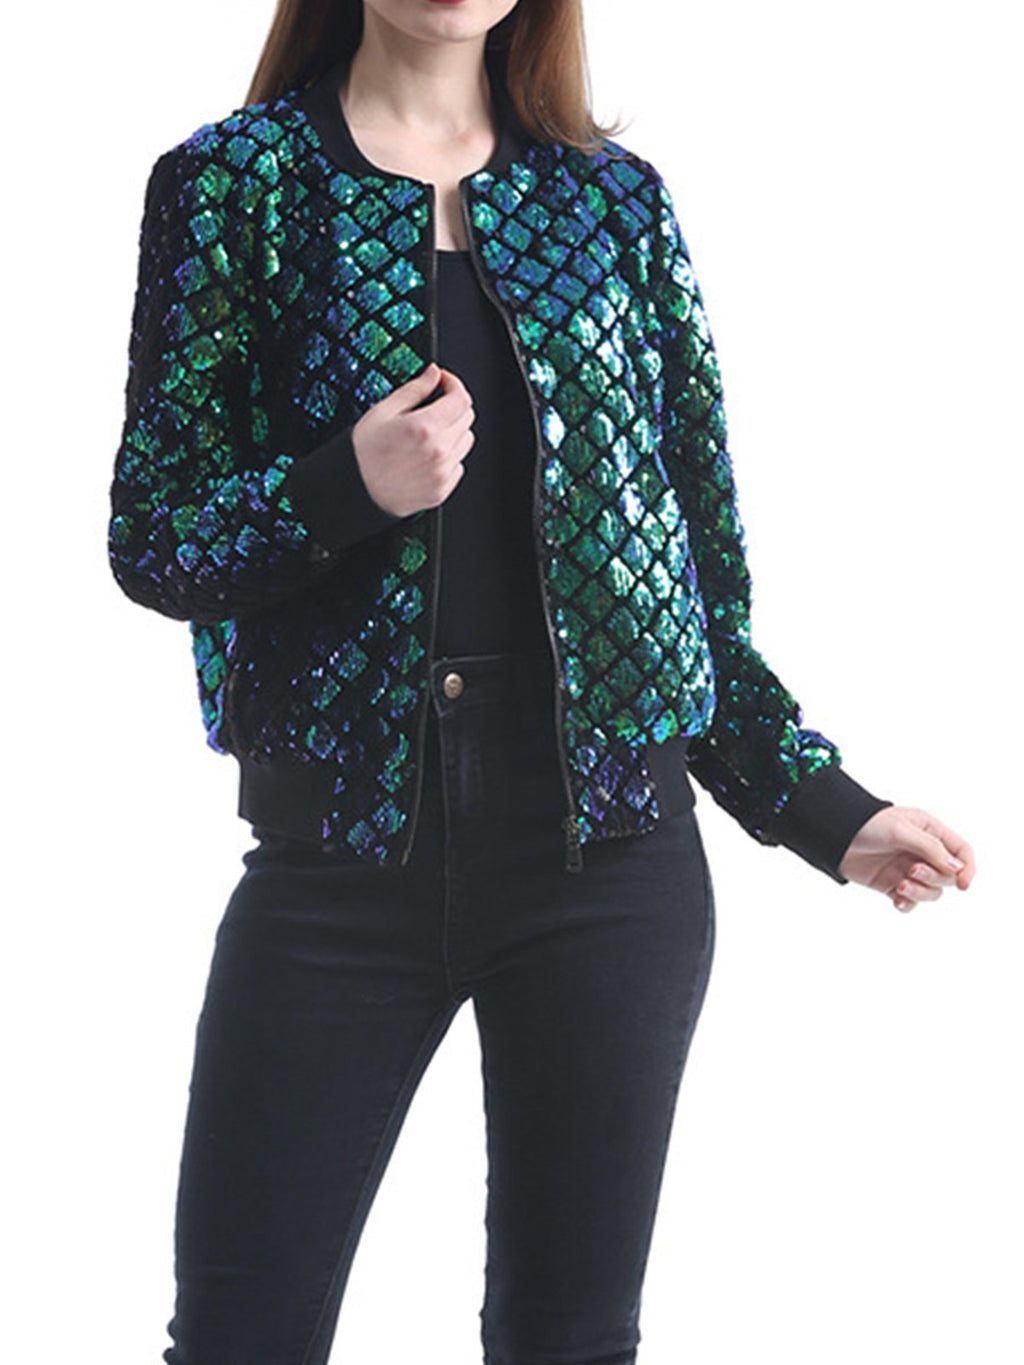 Bright Sequins Green Sequin Long Sleeve Round Neck Casual Jacket Coat